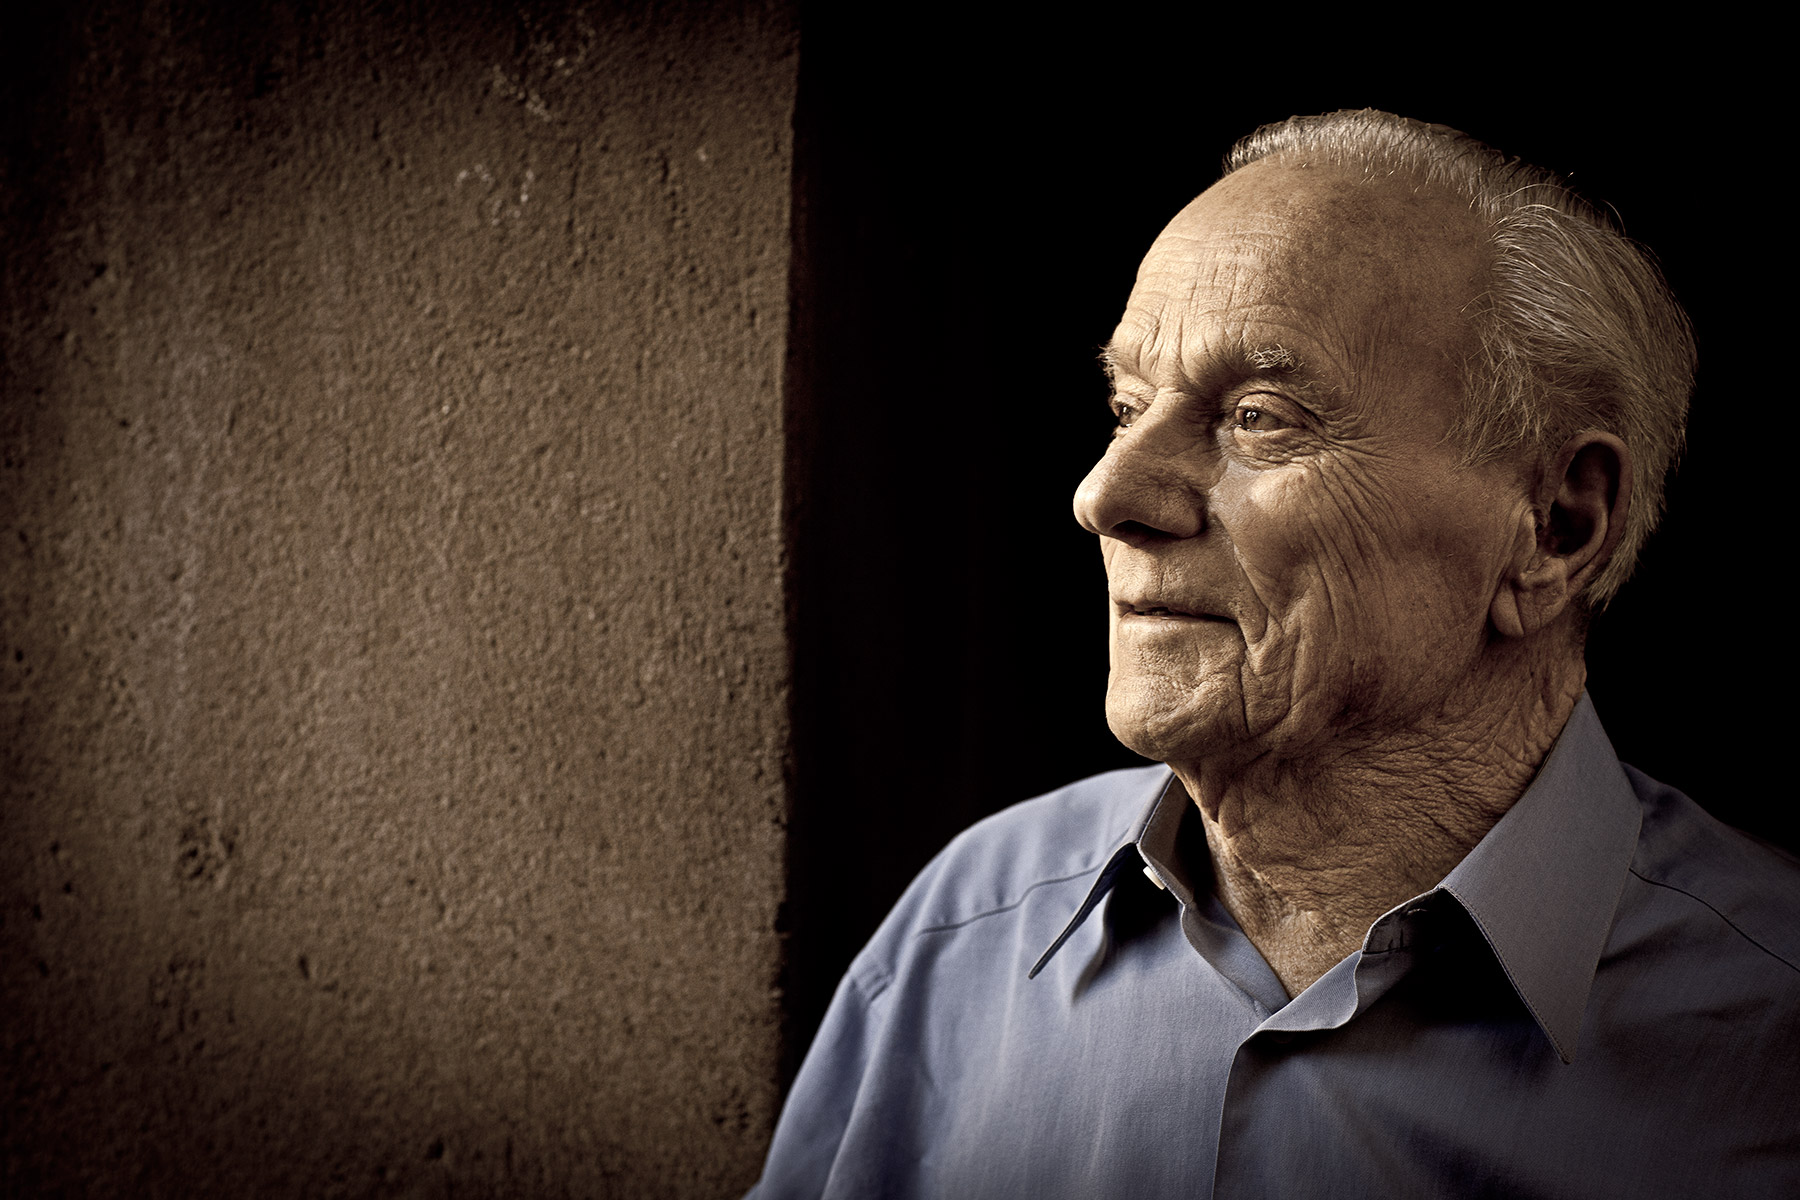 Peter Mondavi Portrait: Rocco Studio Photography